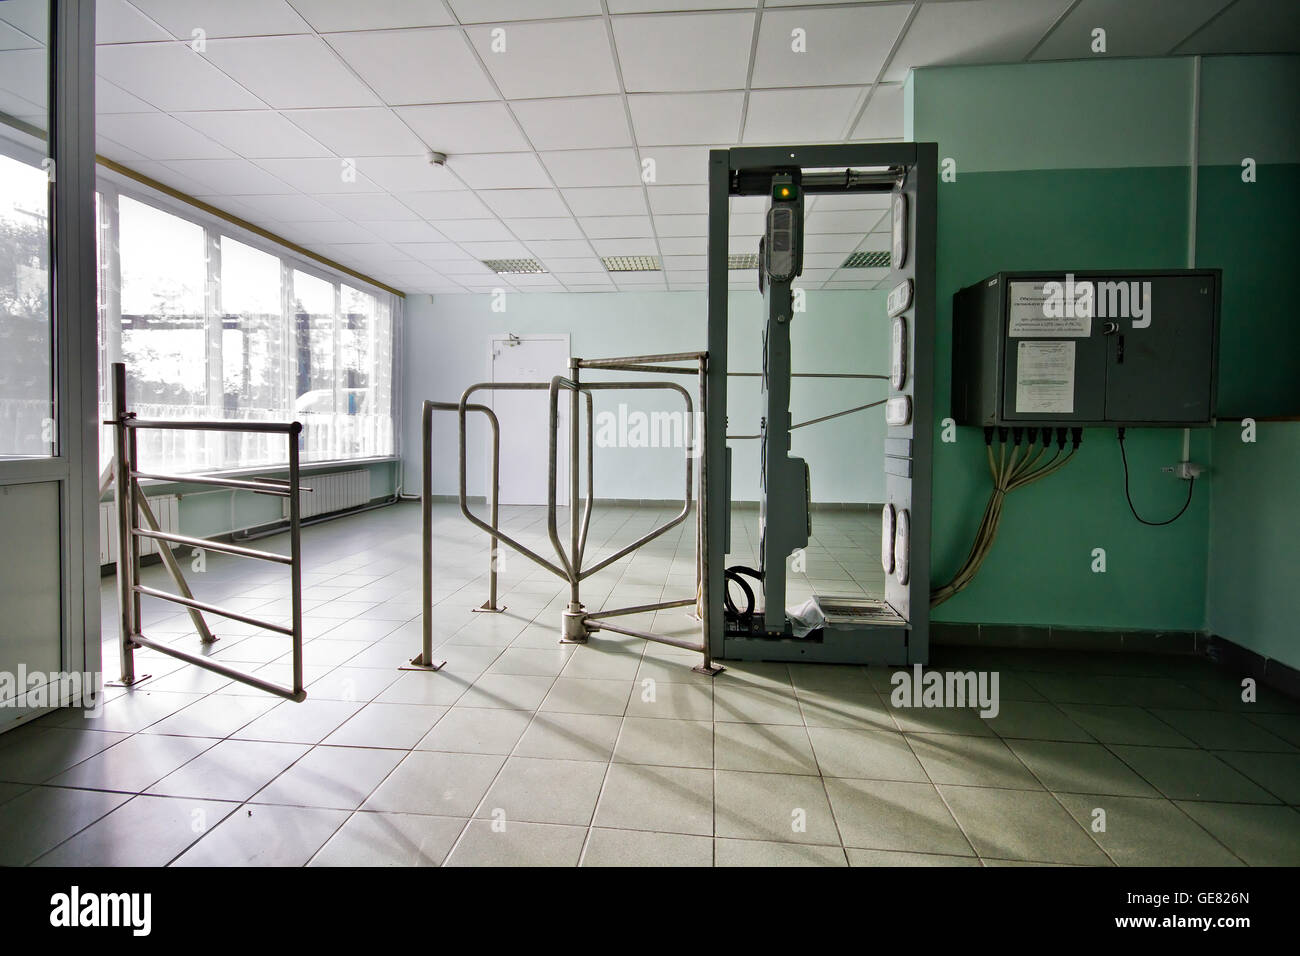 Radiation detector at entrance to Chernobyl nuclear power plant canteen which serves the workers including: military - Stock Image